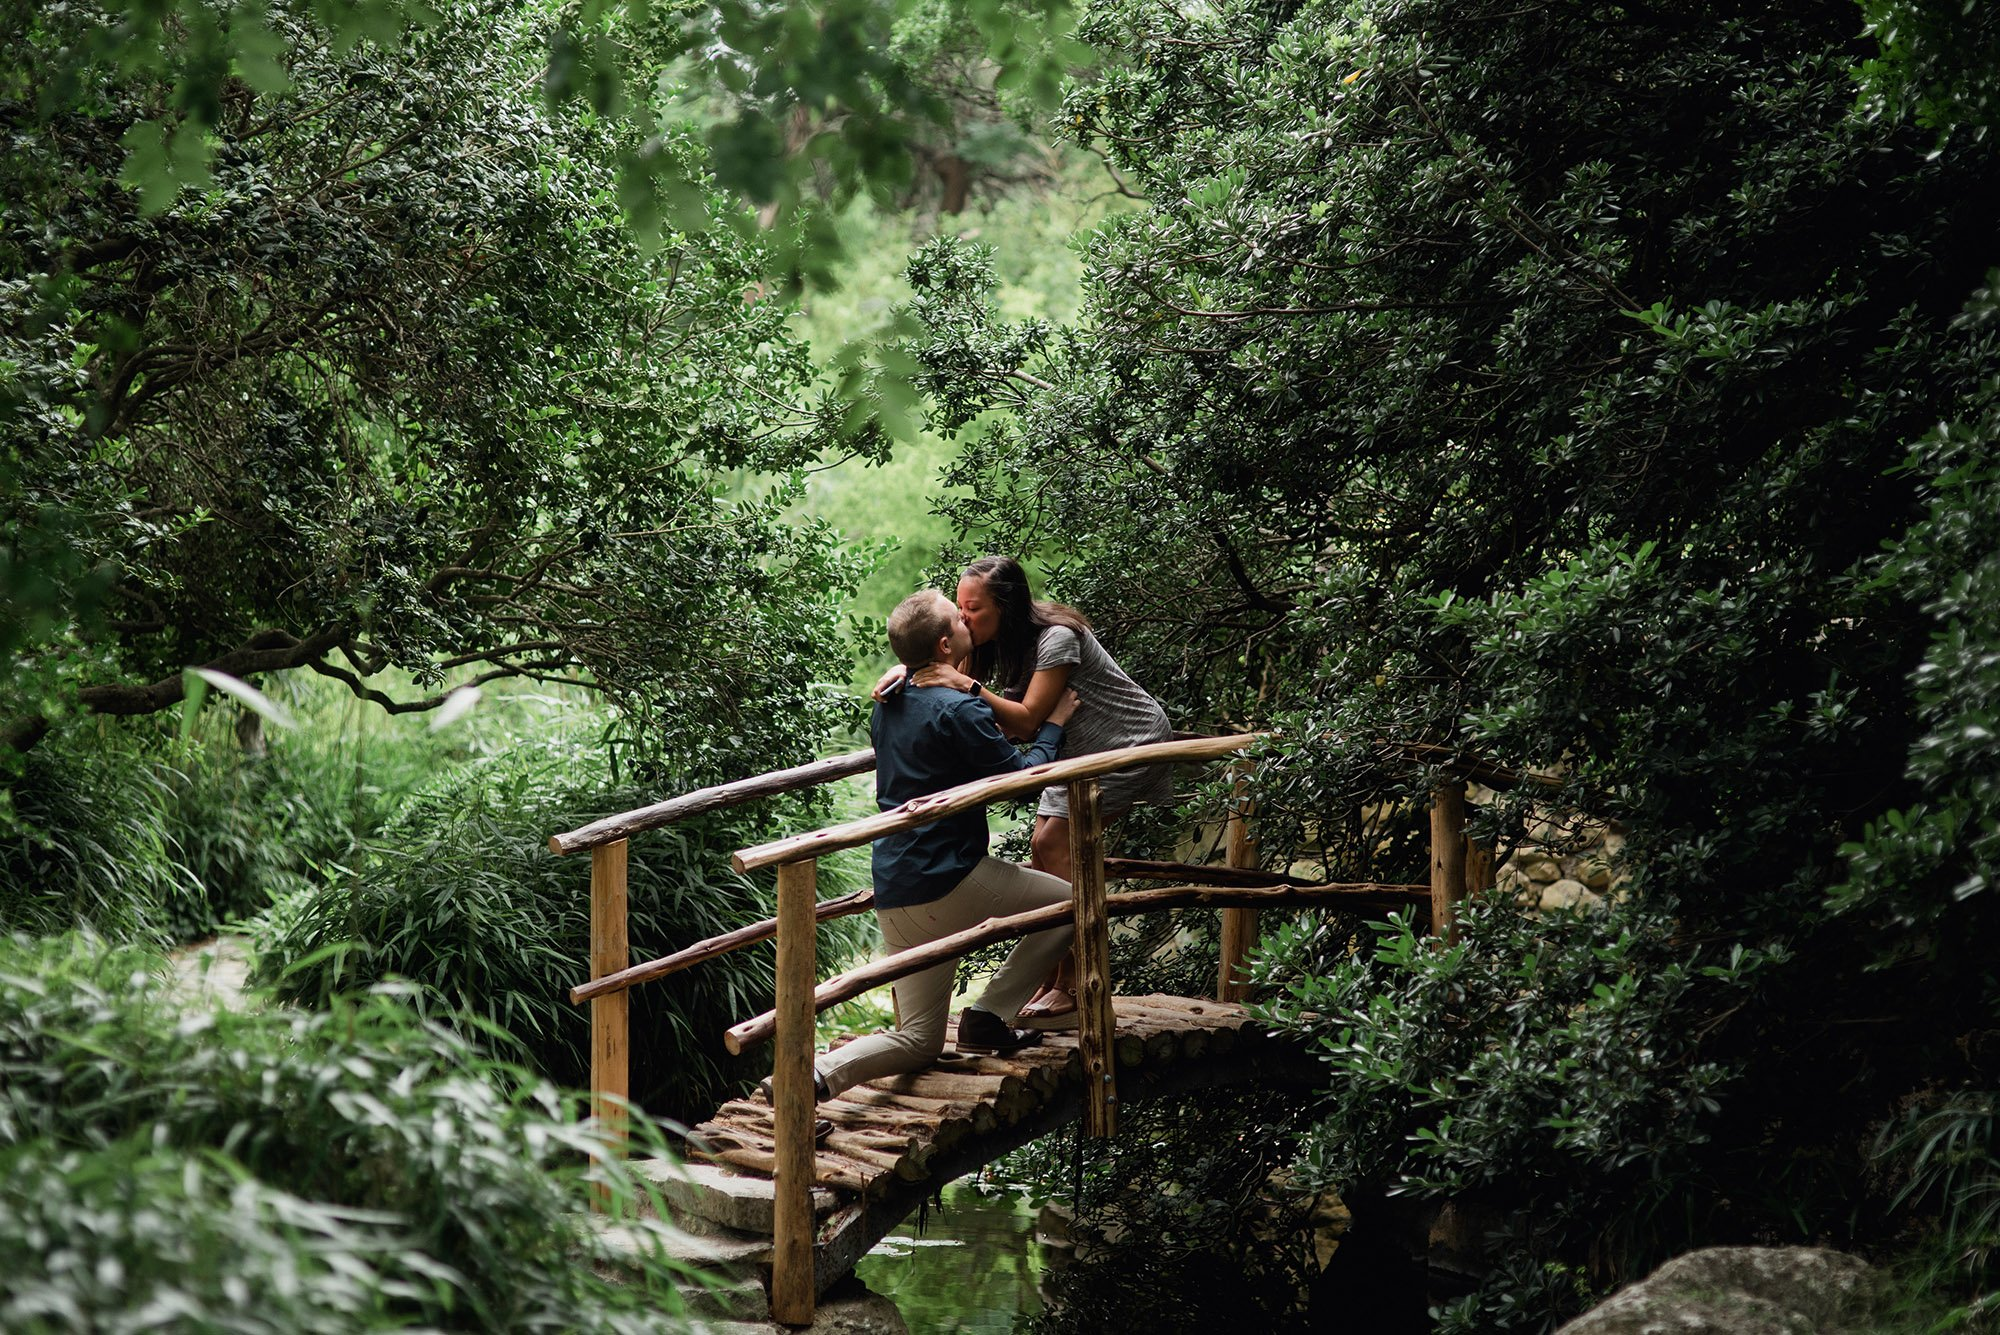 garden proposal in austin texas, austin proposal photographer, surprise proposal at zilker botanical garden,